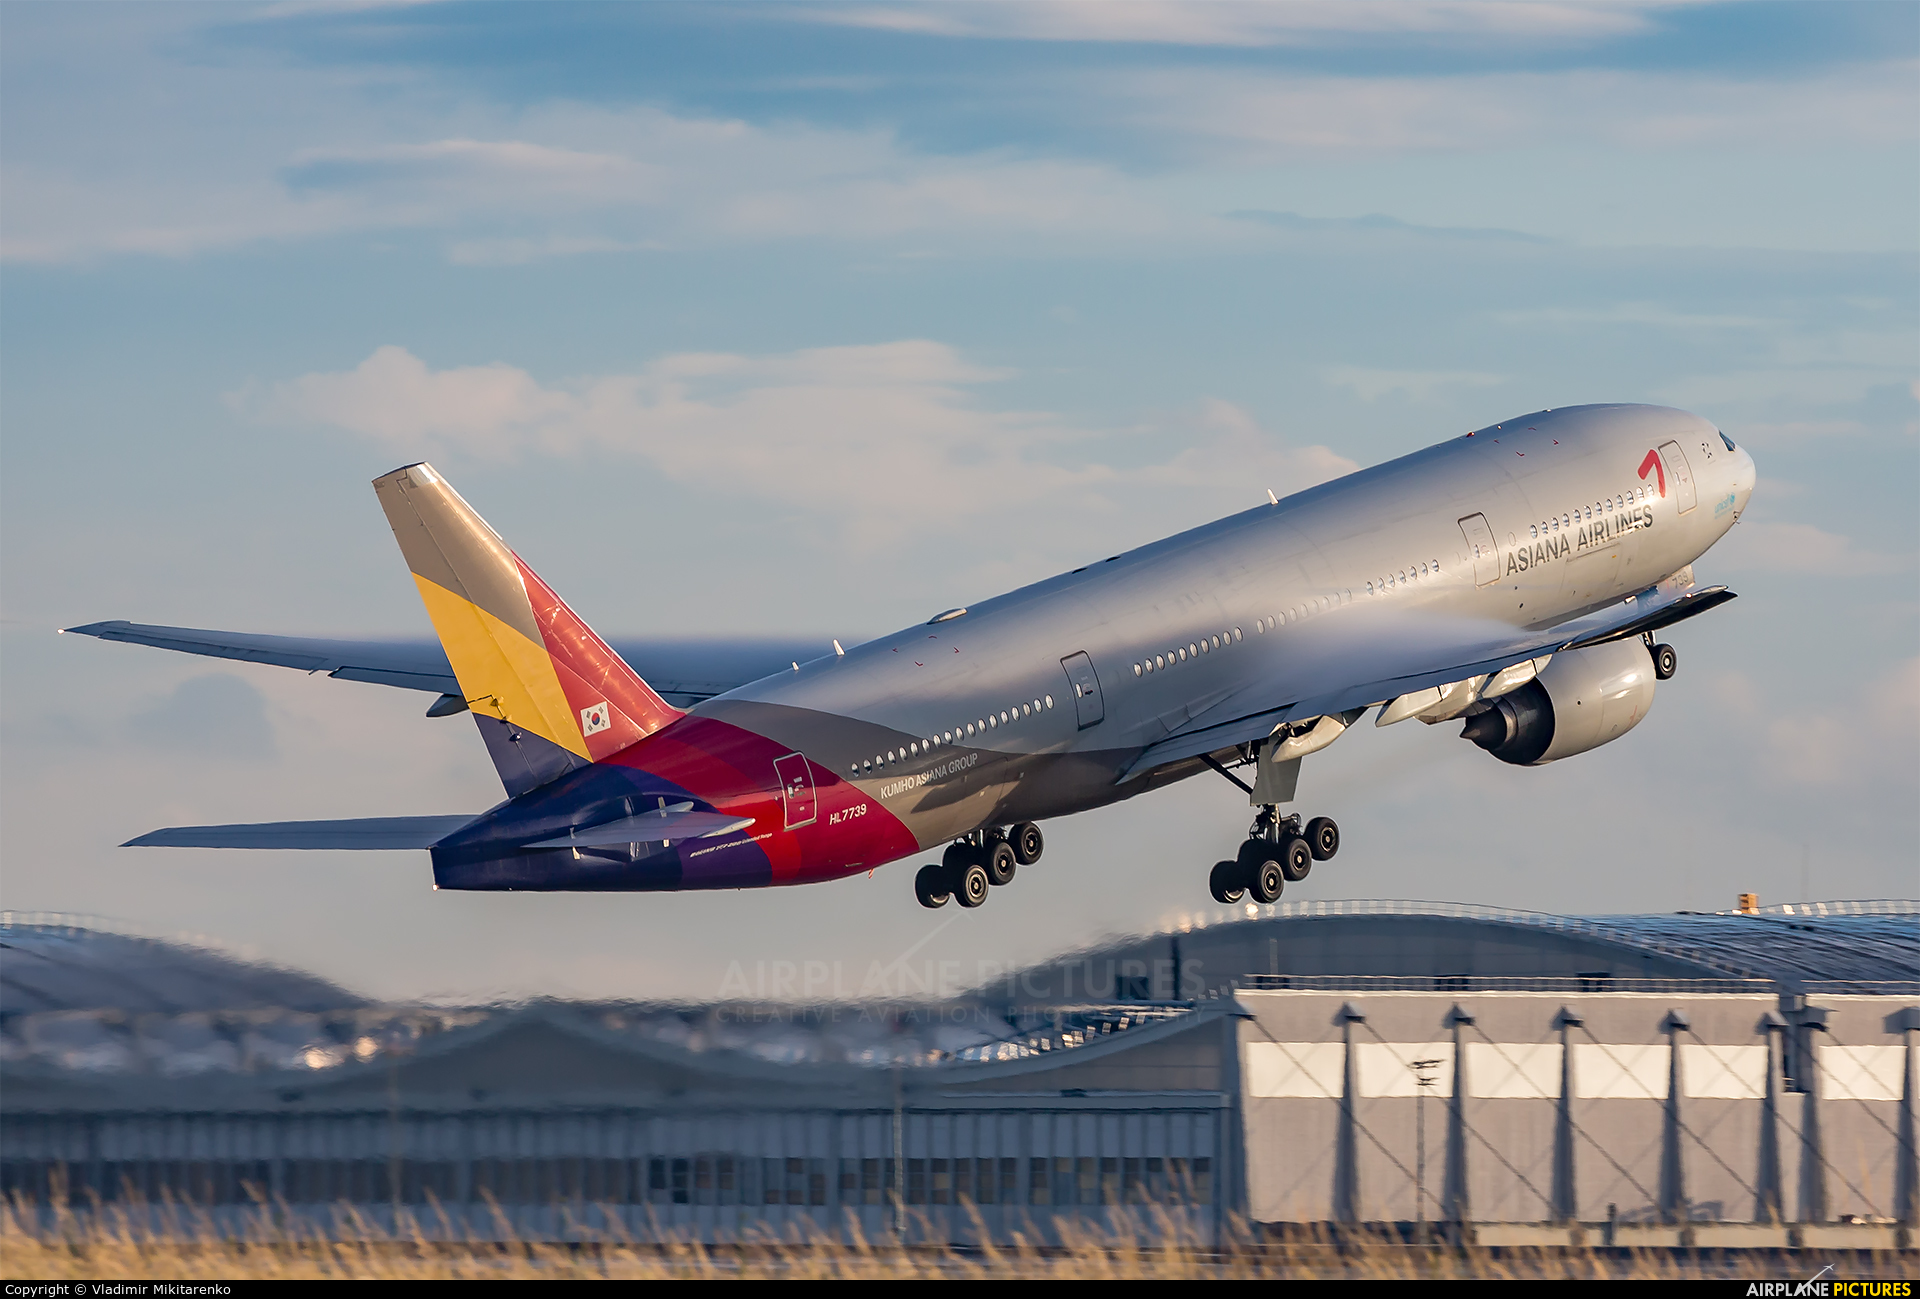 Asiana Airlines HL7739 aircraft at Paris - Charles de Gaulle